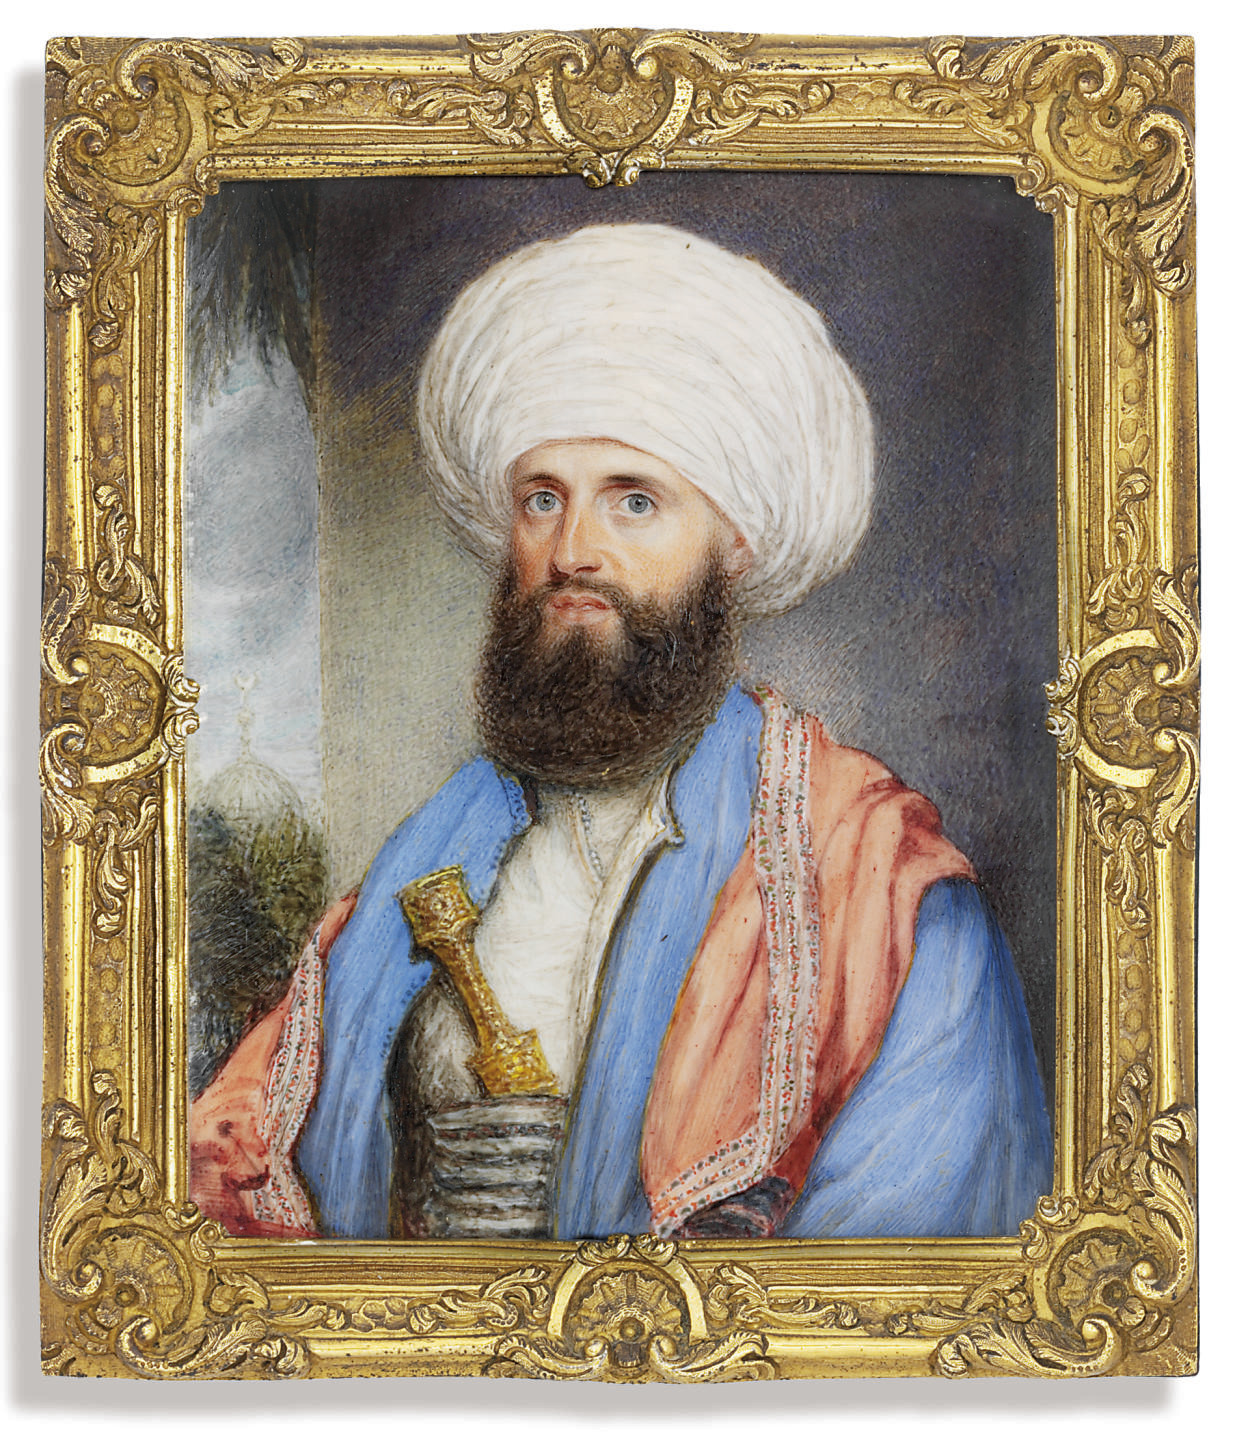 James Silk Buckingham (1786-1855), in white shirt with a light blue coat, pink embroidered shawl around his shoulders and a white turban with a dagger secured in to his cummerbund; landscape background with a mosque